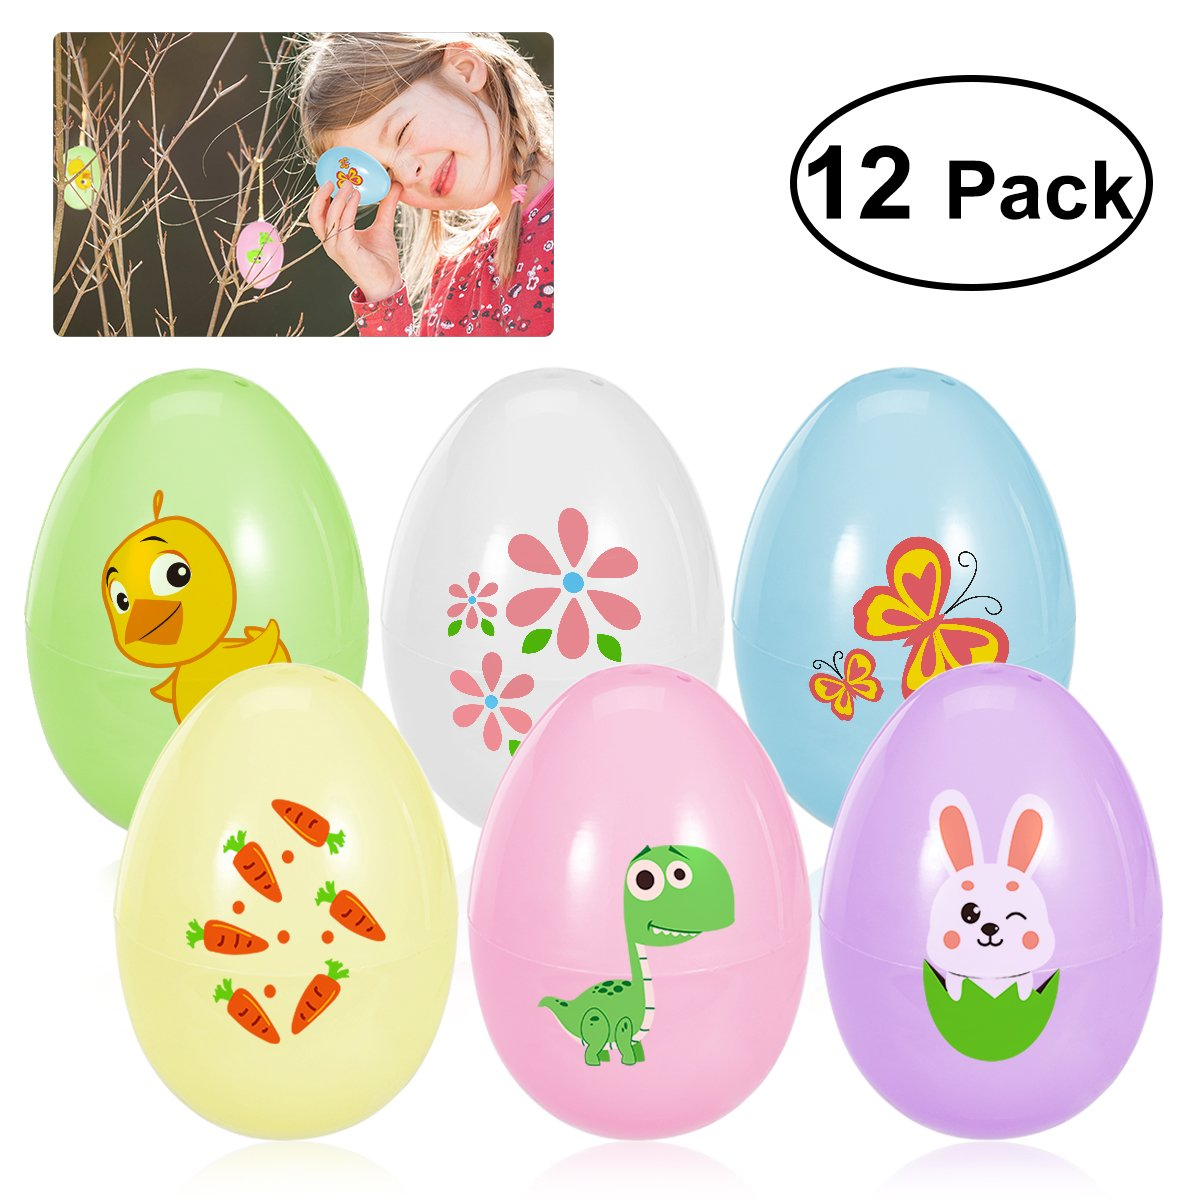 TENDYCOCO Toy Filled Easter Eggs Plastic Coloring Easter ...